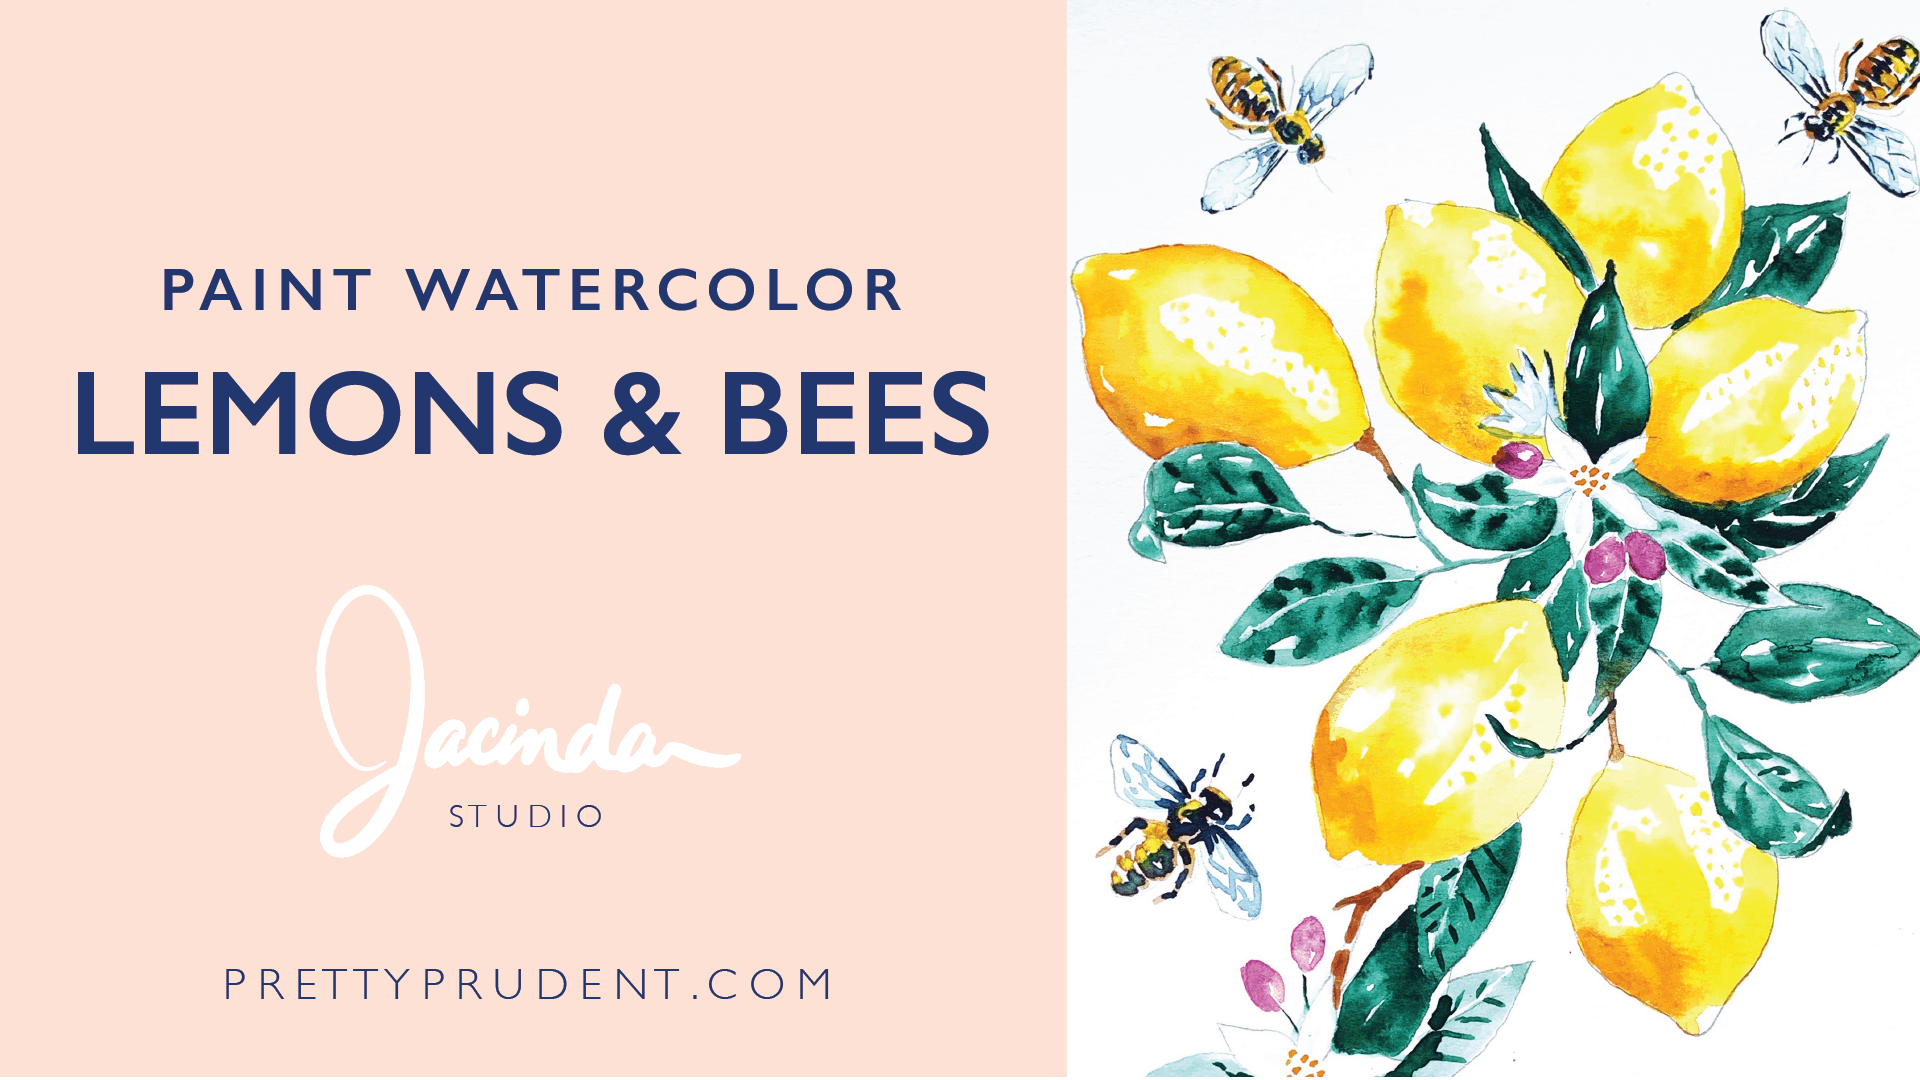 Watercolor Paint Lemons and Bees